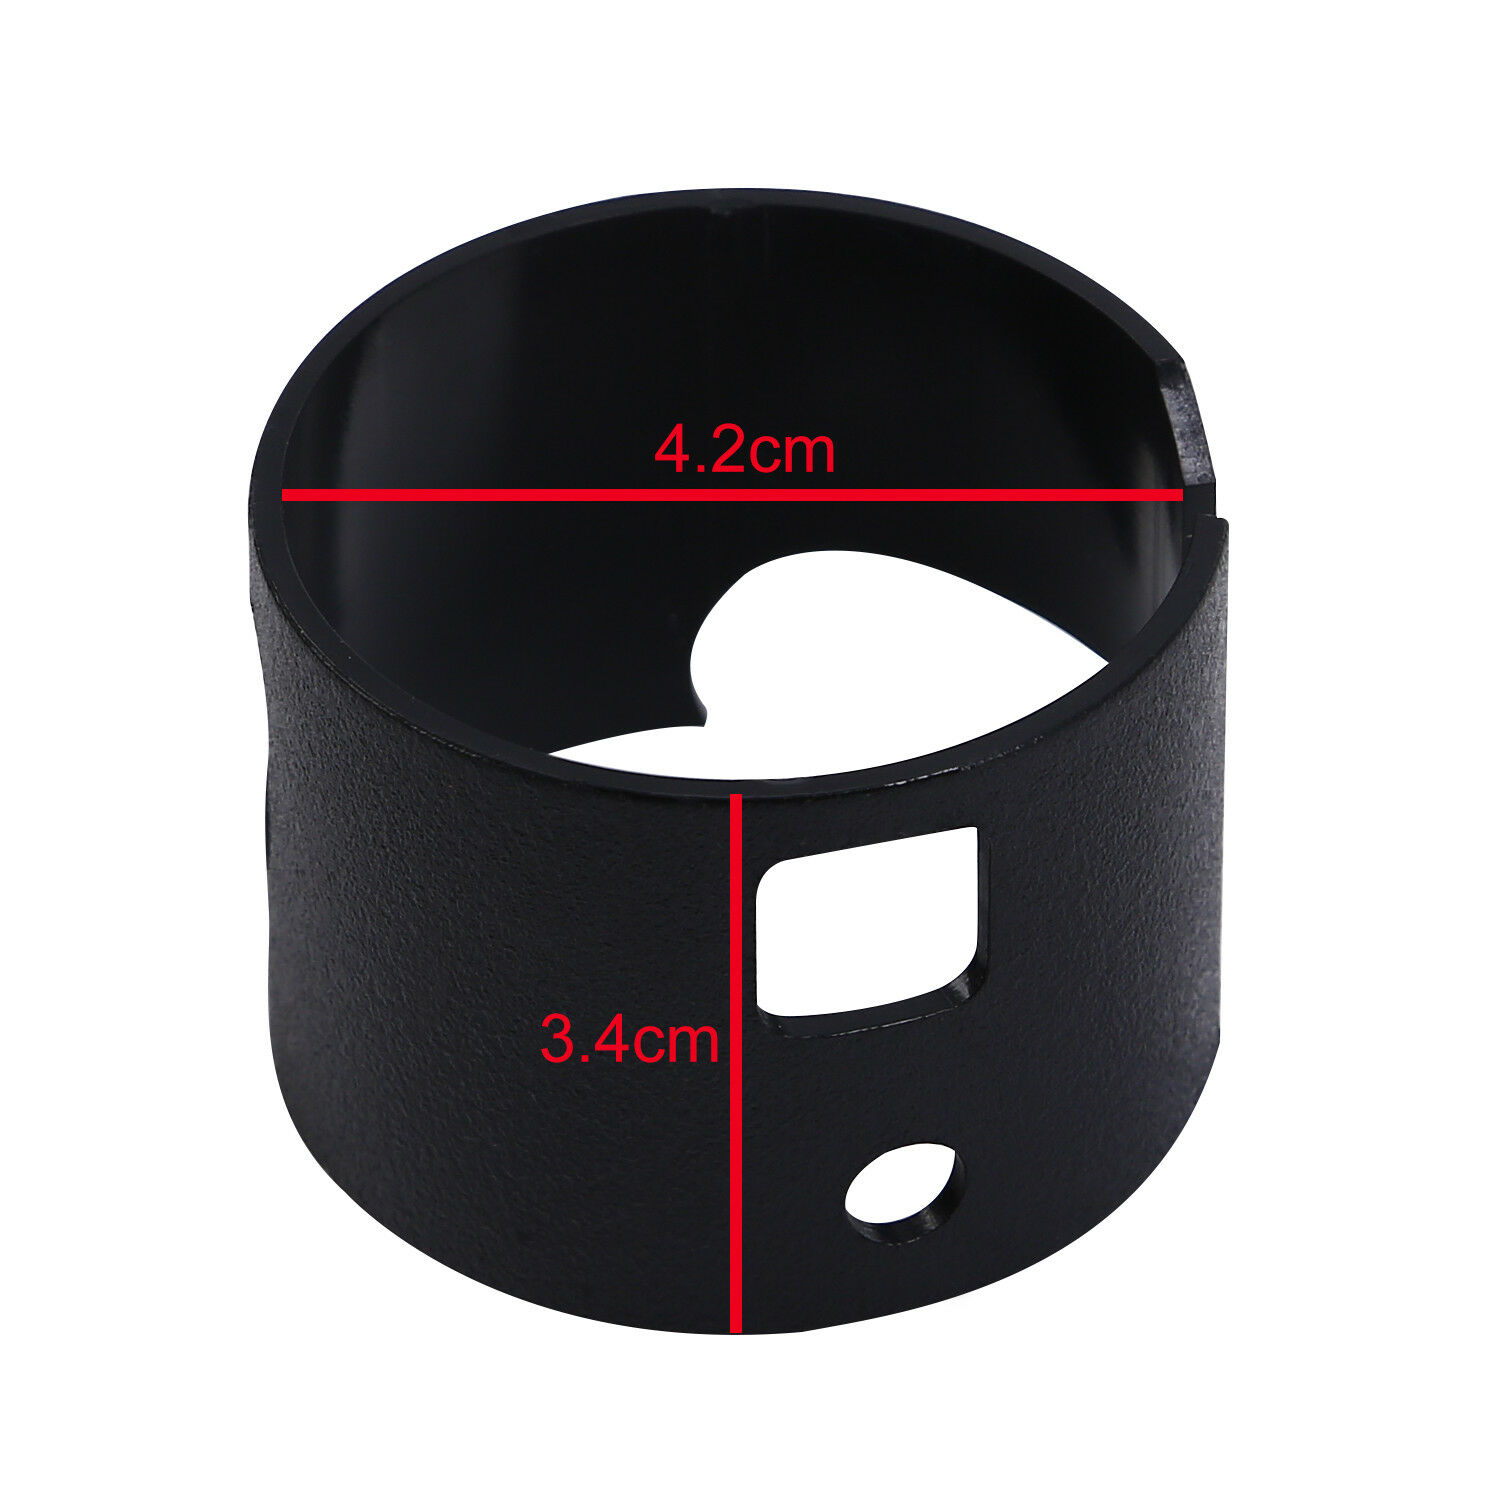 Motorcycle Reservoir Cover Rear Brake Oil Cup Cover For Victory XR Hard-Ball Hard Ball Hardball Cross Country Cross Roads image